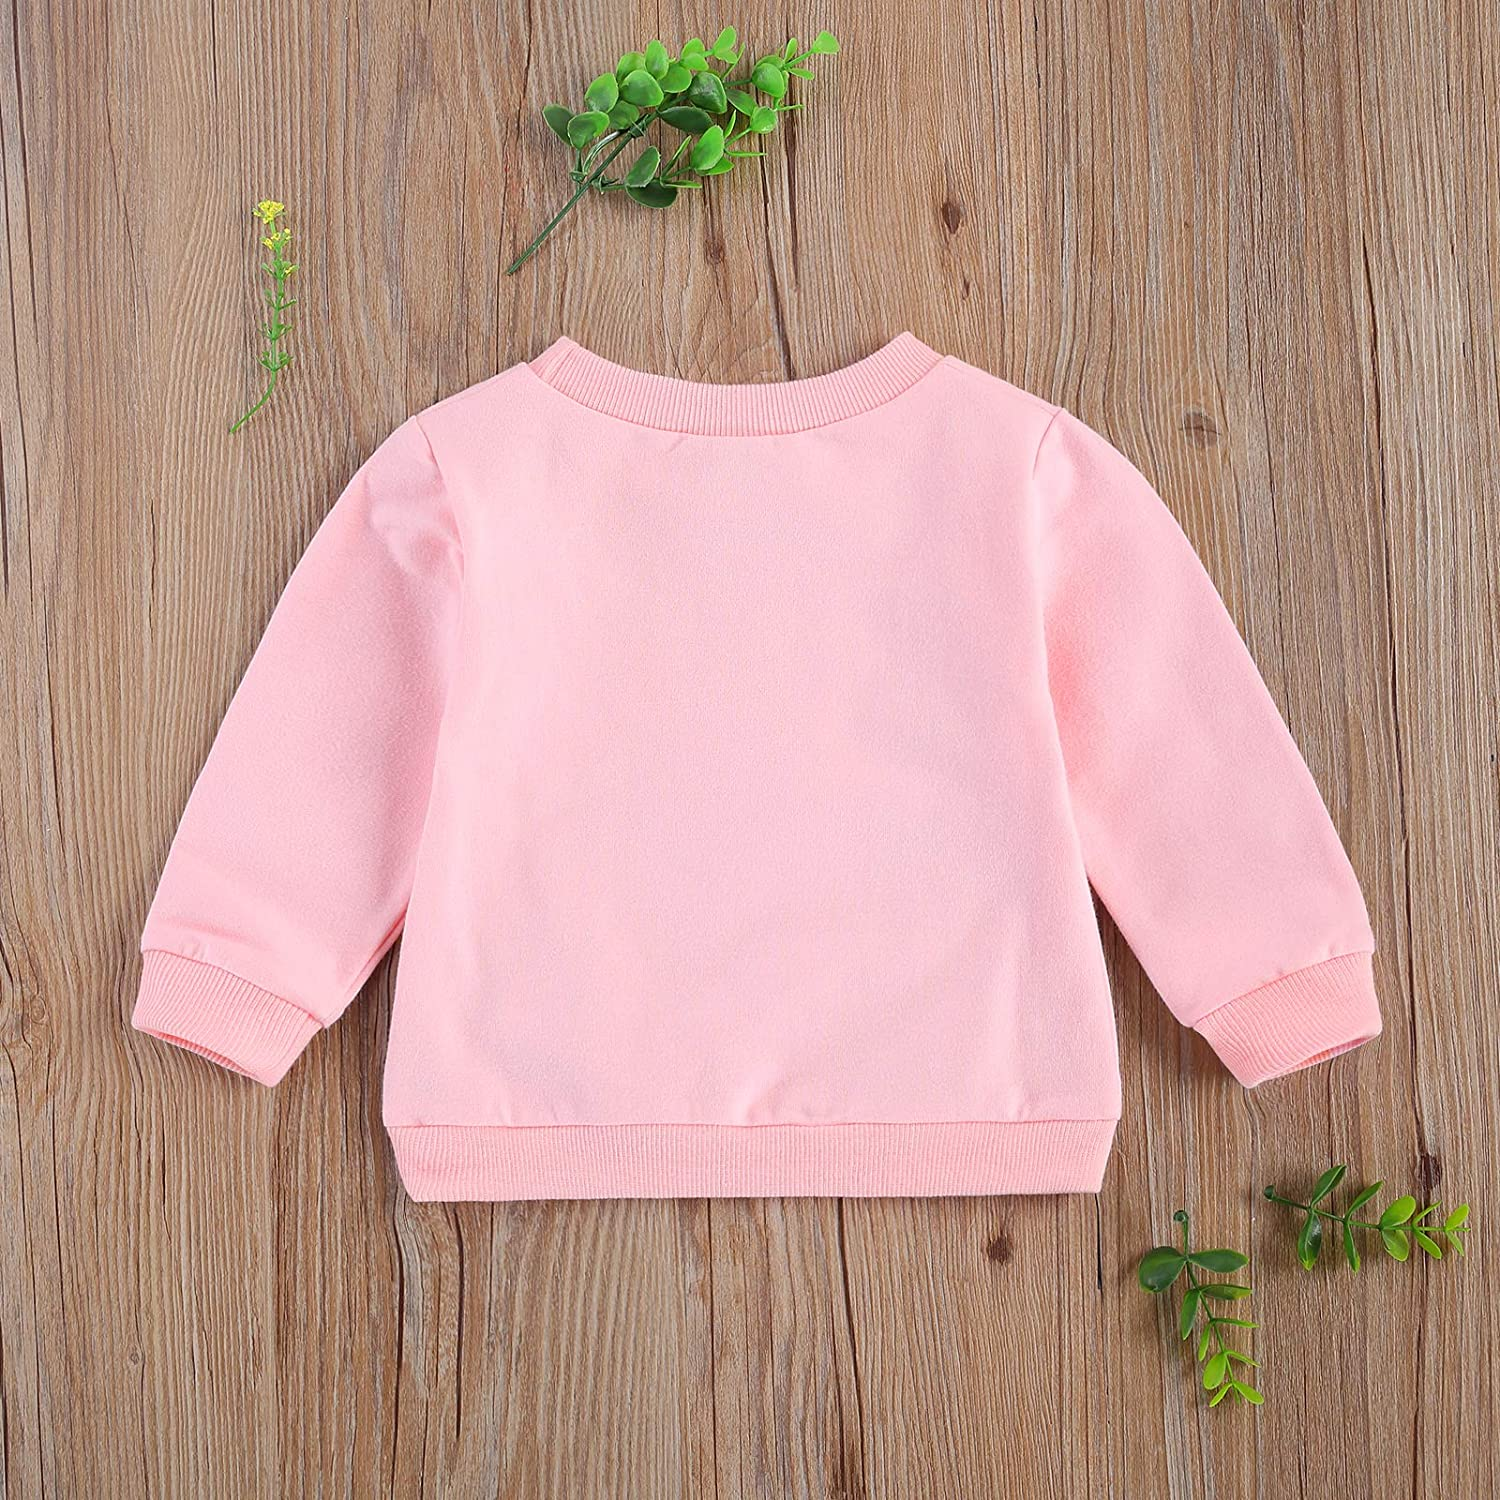 Mekysd Toddler Baby Girl Leopard Sweater Tops Fashion Long Sleeve Blouse Pullover Casual Top One Piece Outfits